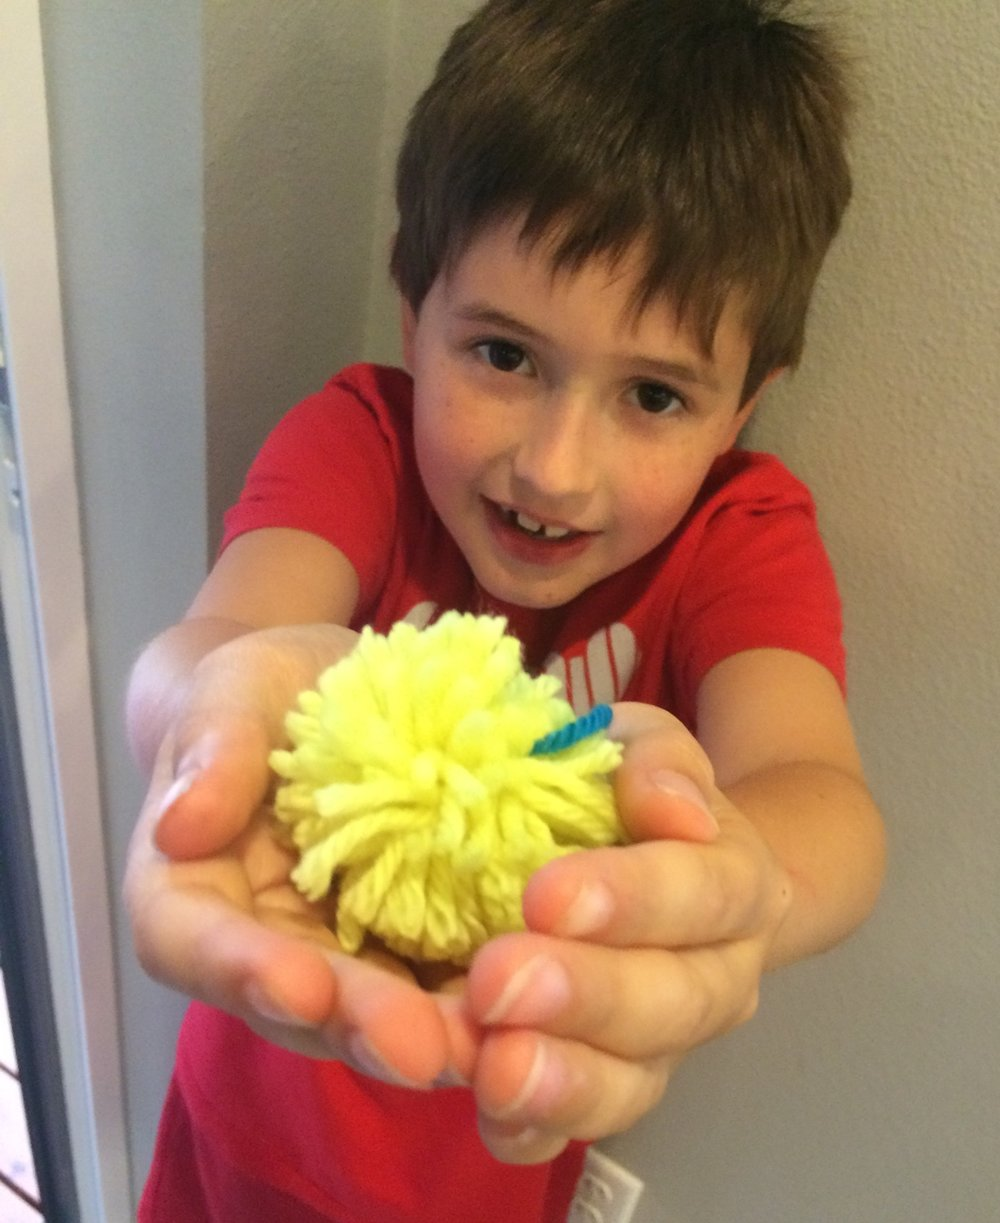 Boys love making pompoms, too.